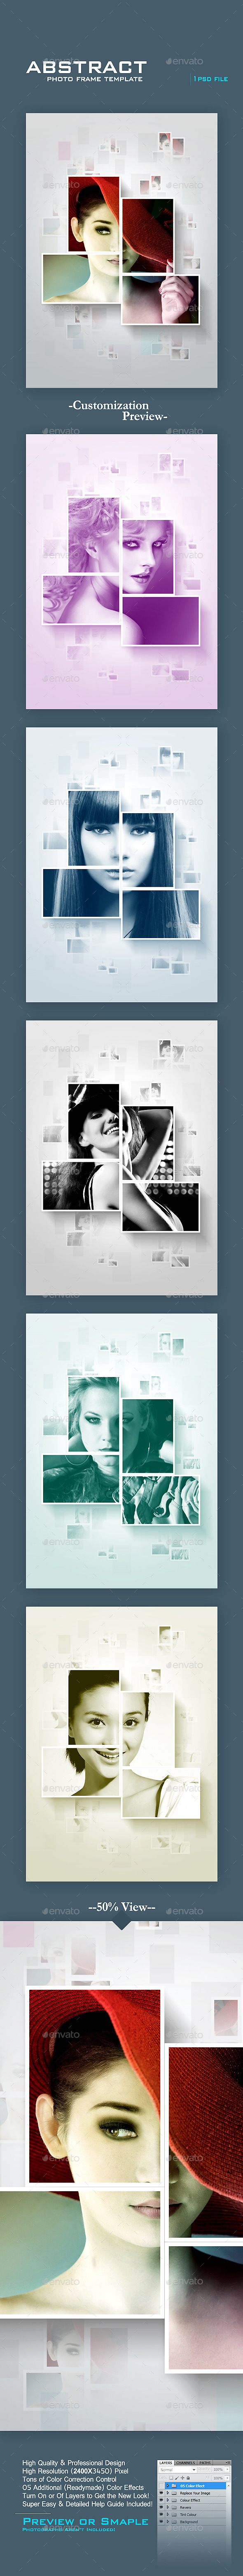 Abstract Photo Frame Template - Photo Templates Graphics